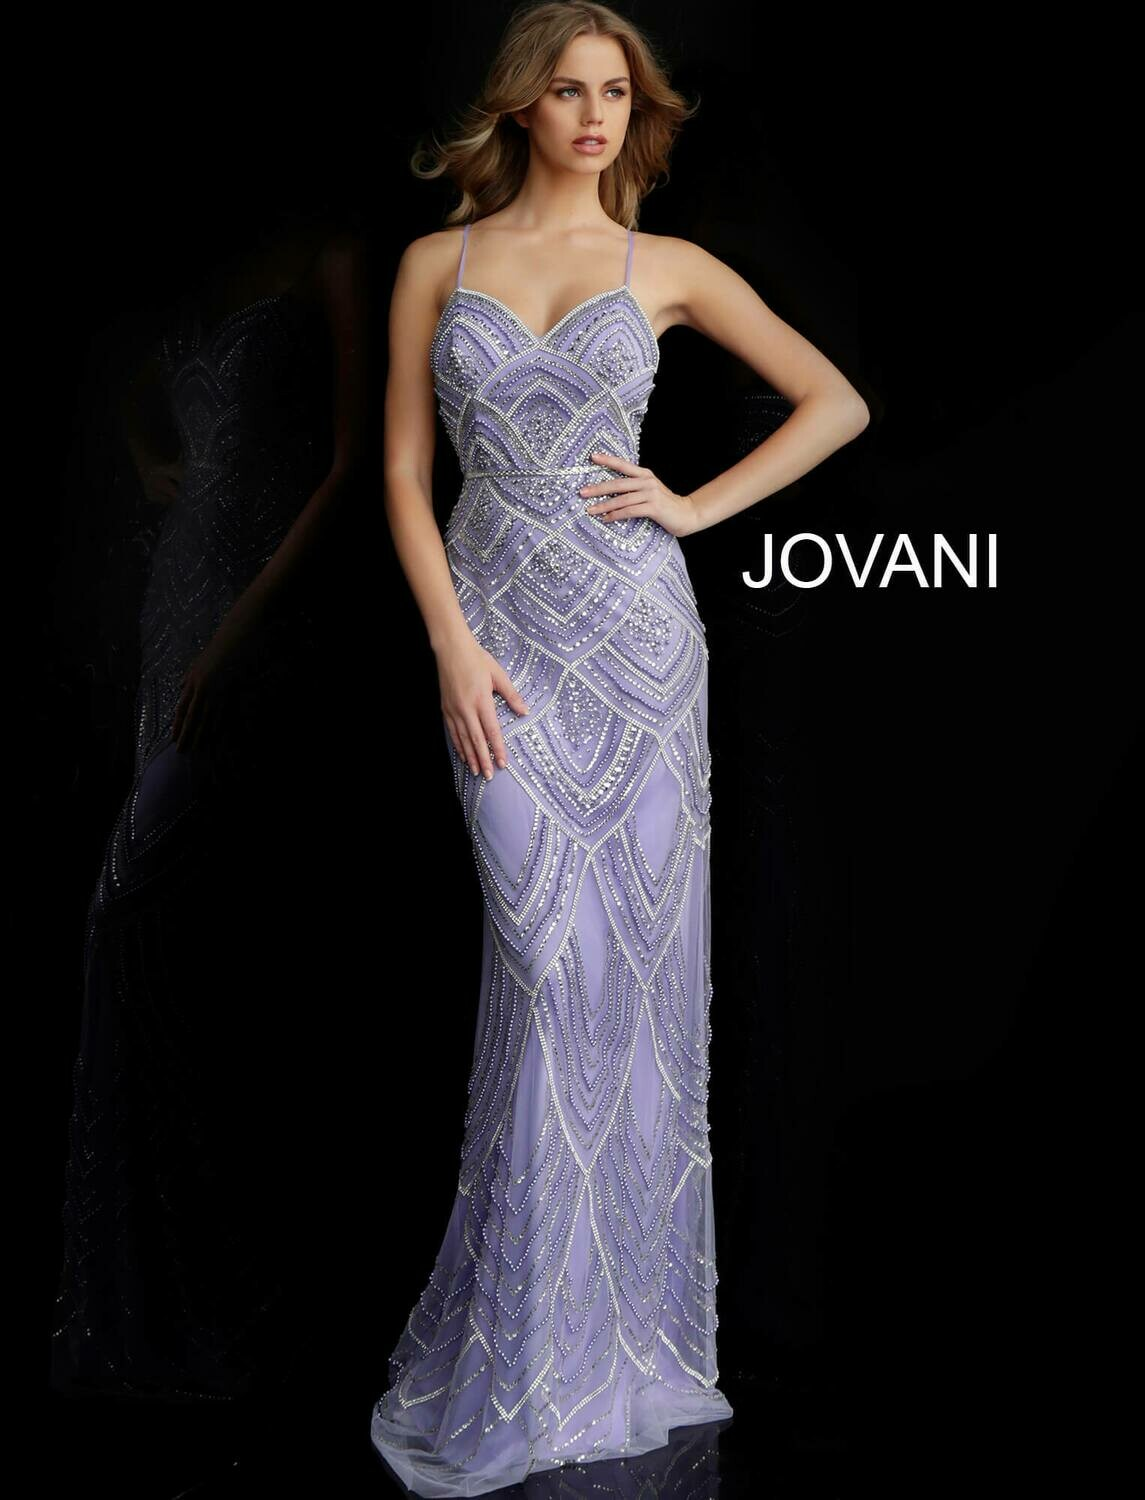 Jovani Beaded Gown with Sweetheart Neckline in Lilac